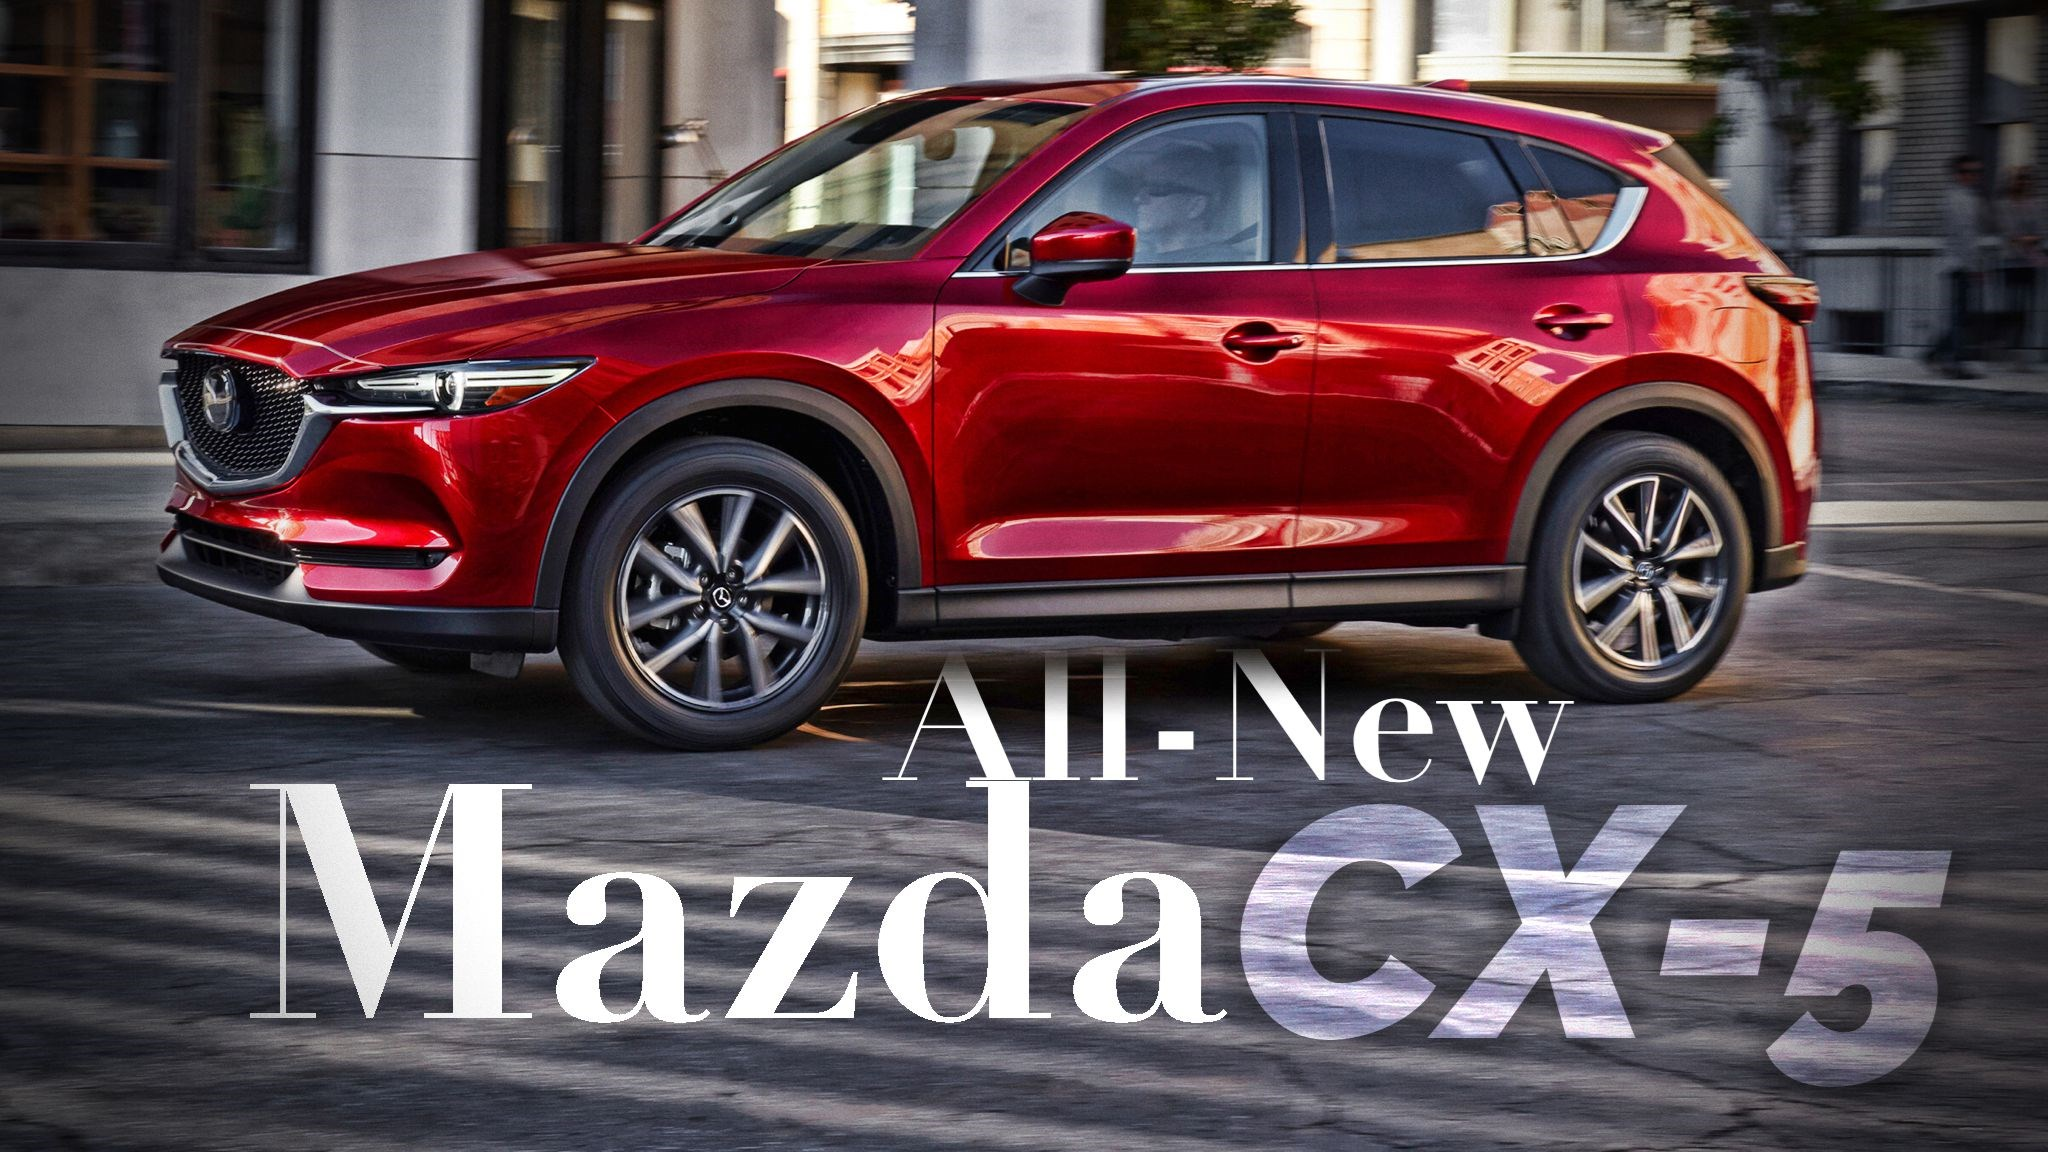 2017 Mazda CX-5 Breaks Cover